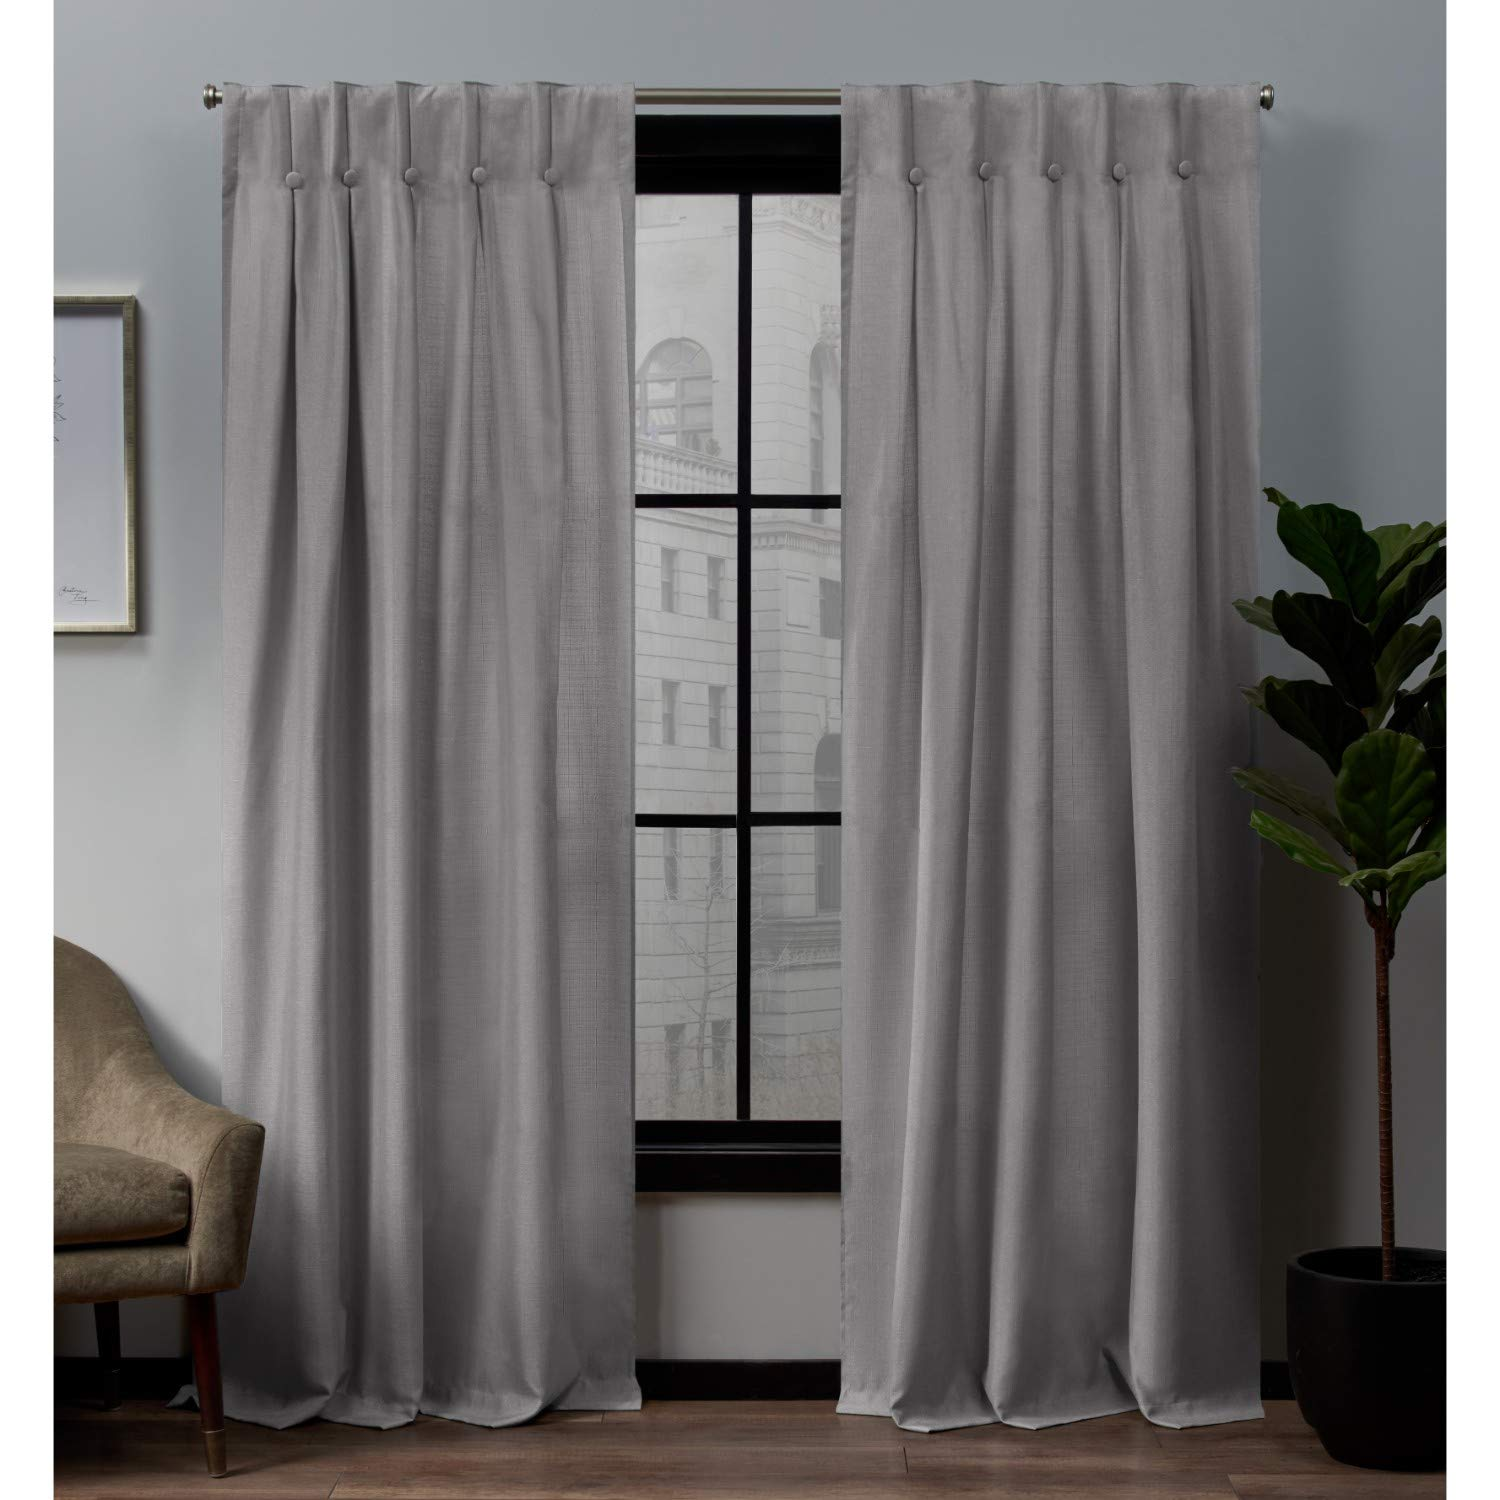 Exclusive Home Curtains Loha Linen Button Top Curtain Panel Pair, 32x96, Dove Grey